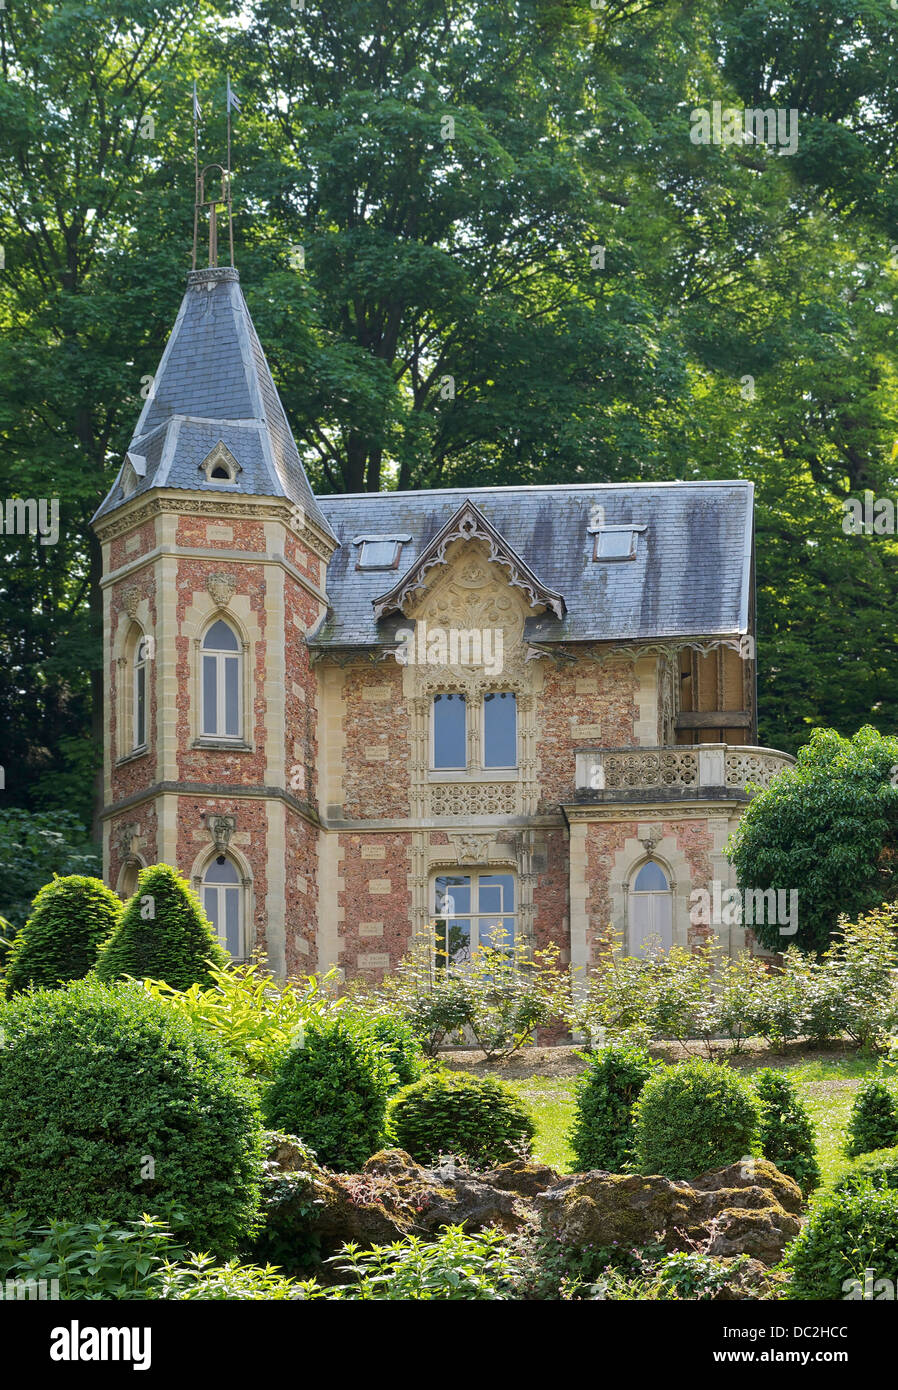 'Château d'If', small gothic revival house ordered by Alexandre Dumas in the gardens of 'Monte - Stock Image